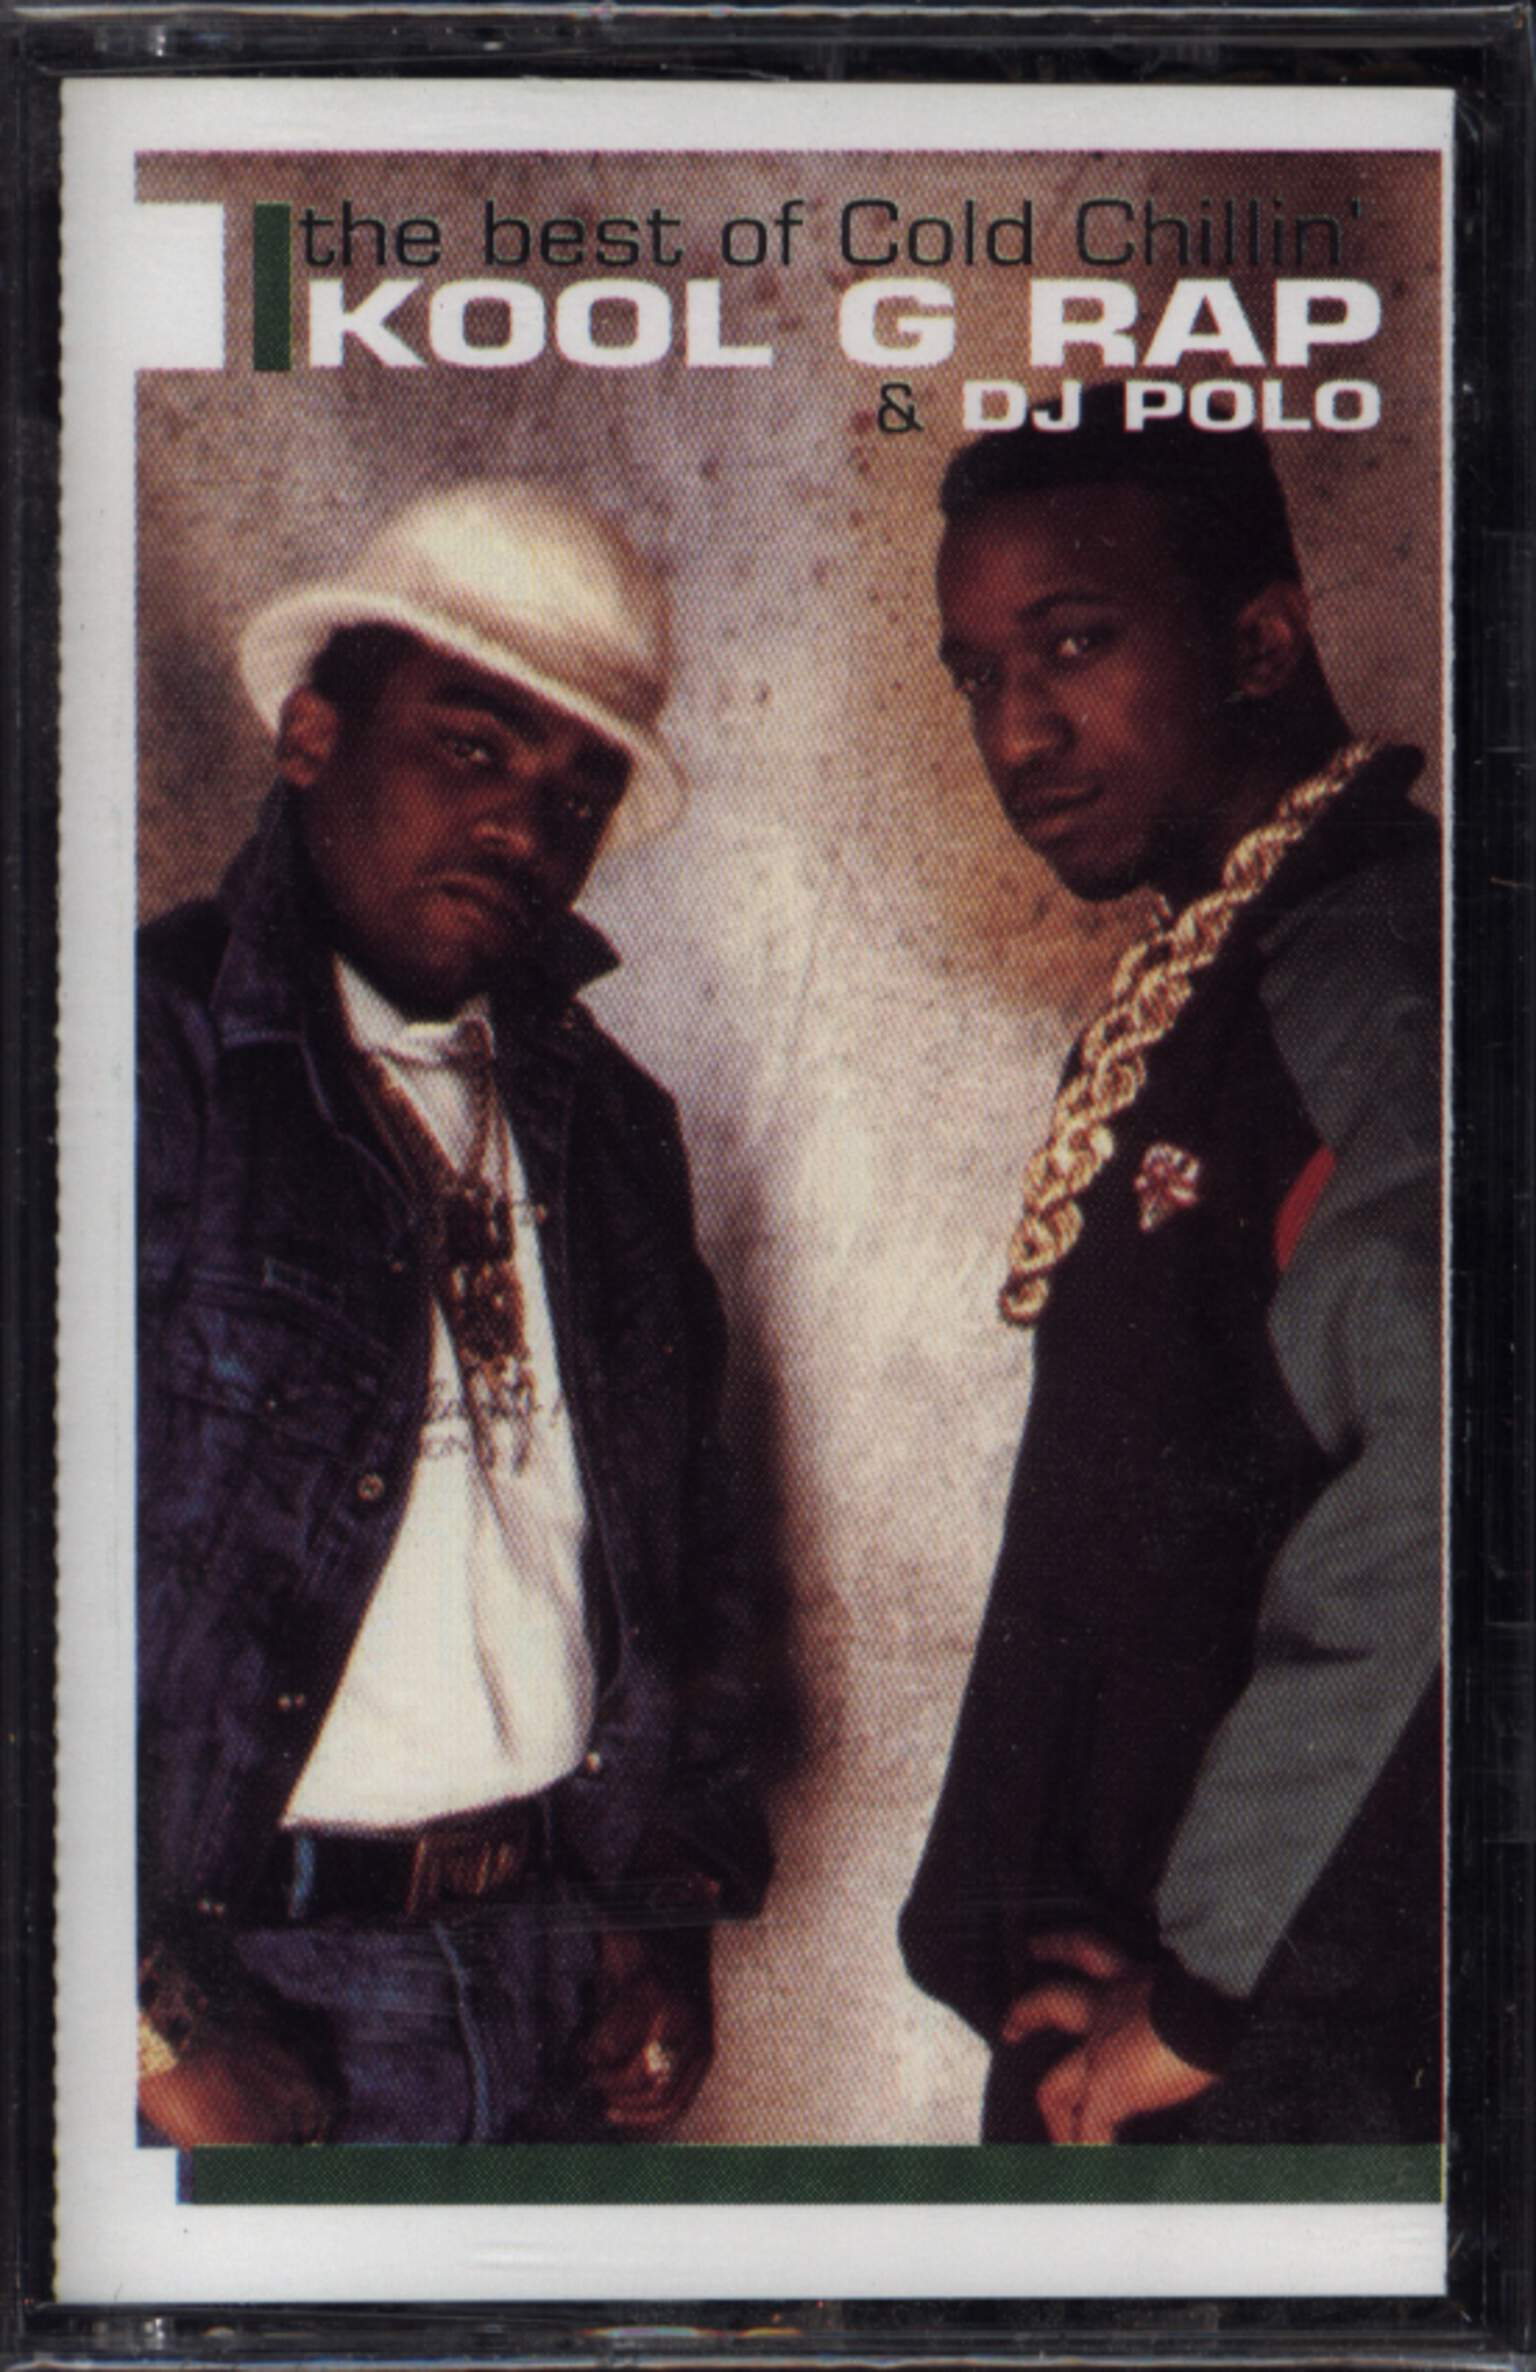 Kool G Rap & D.J. Polo: The Best Of Cold Chillin', Compact Cassette